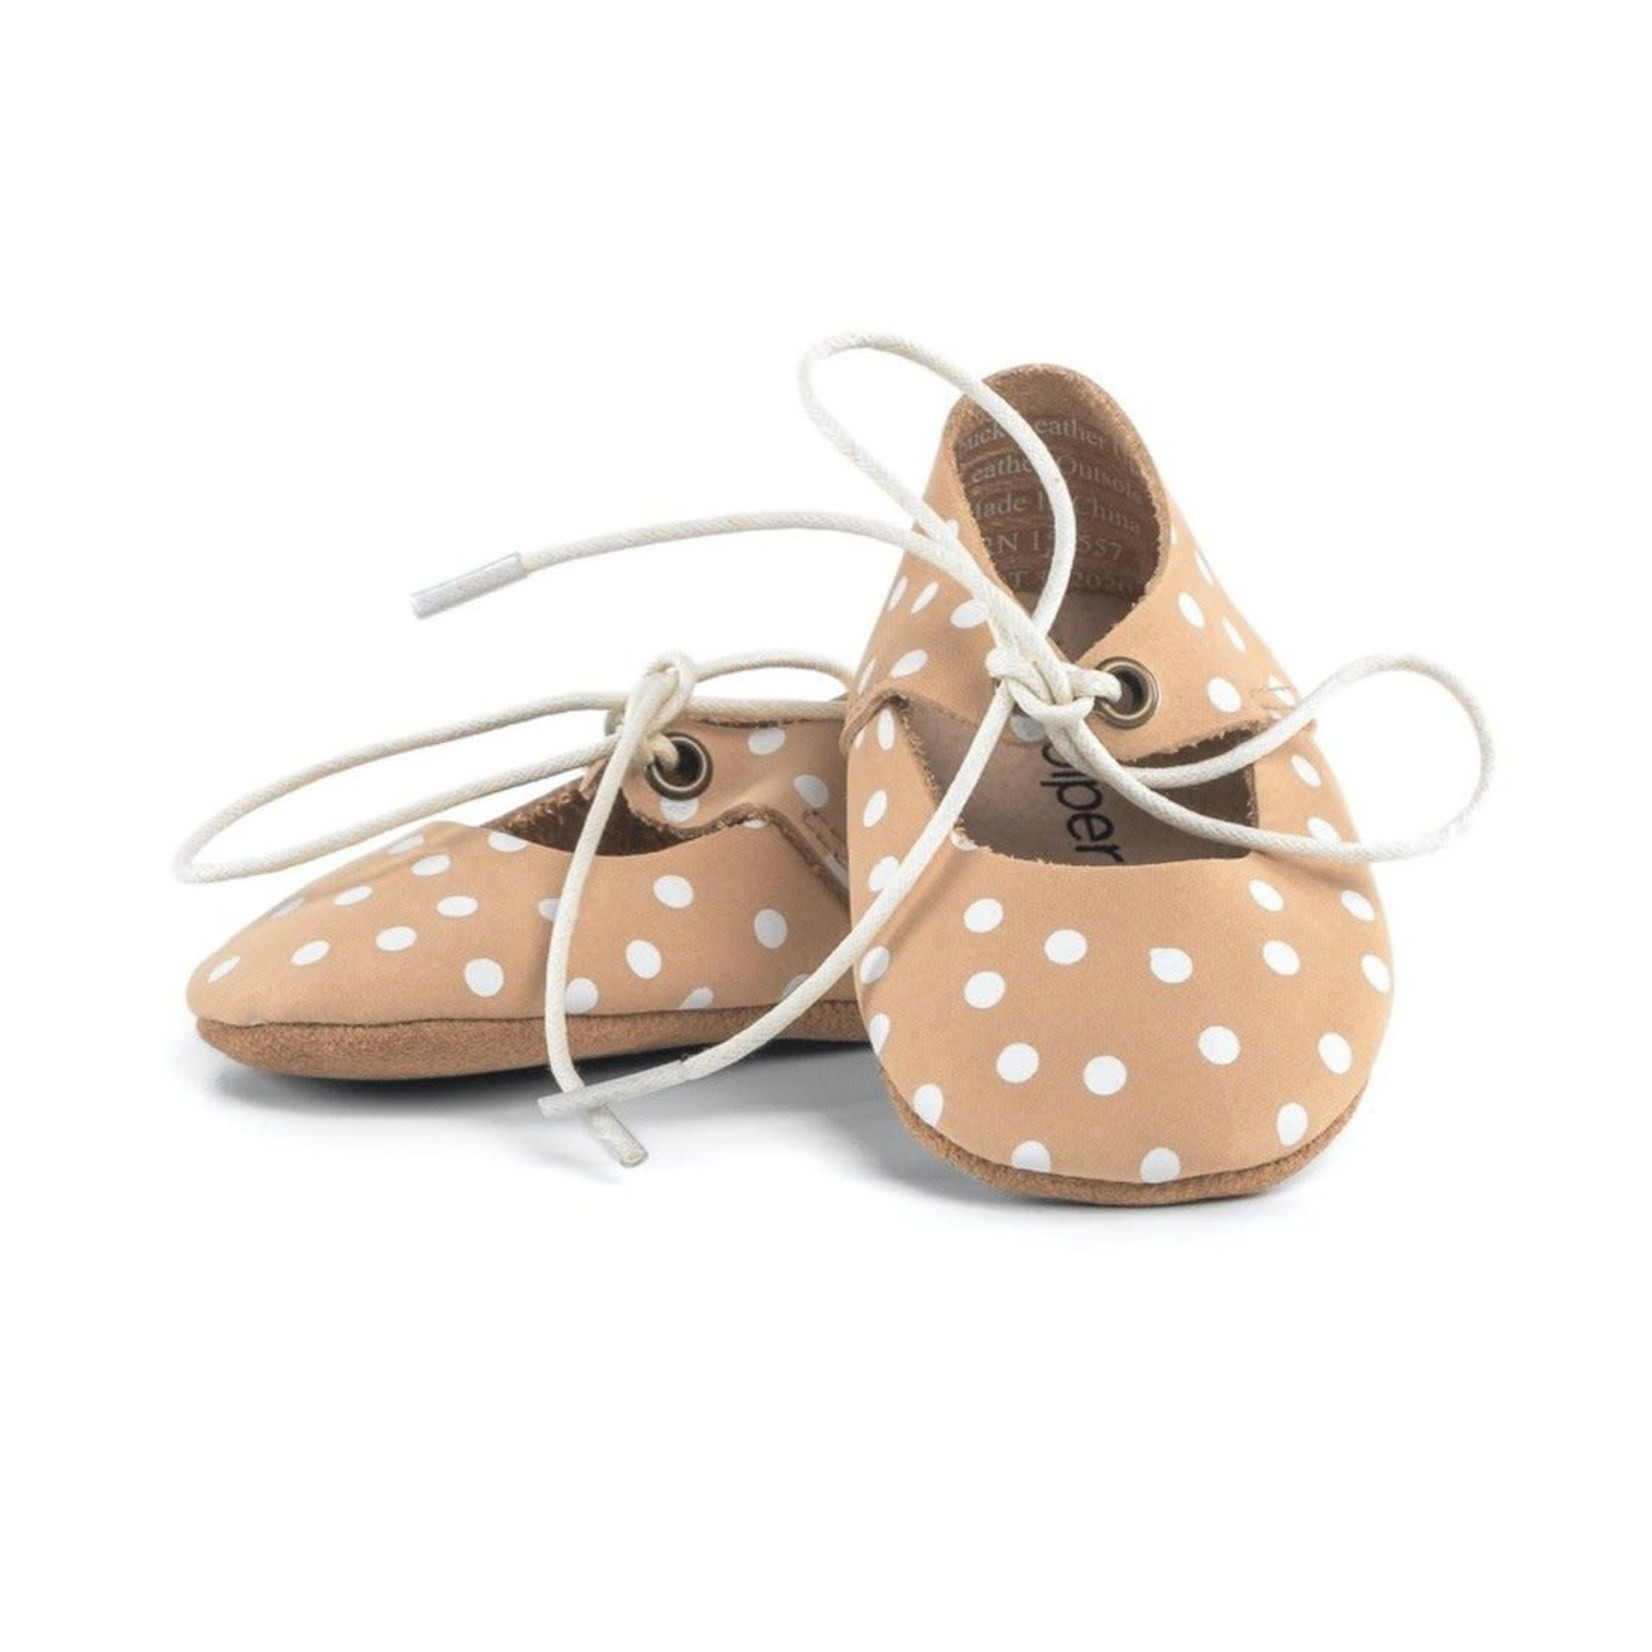 Lace Up Mary-Jane - Beverly - Soft Sole